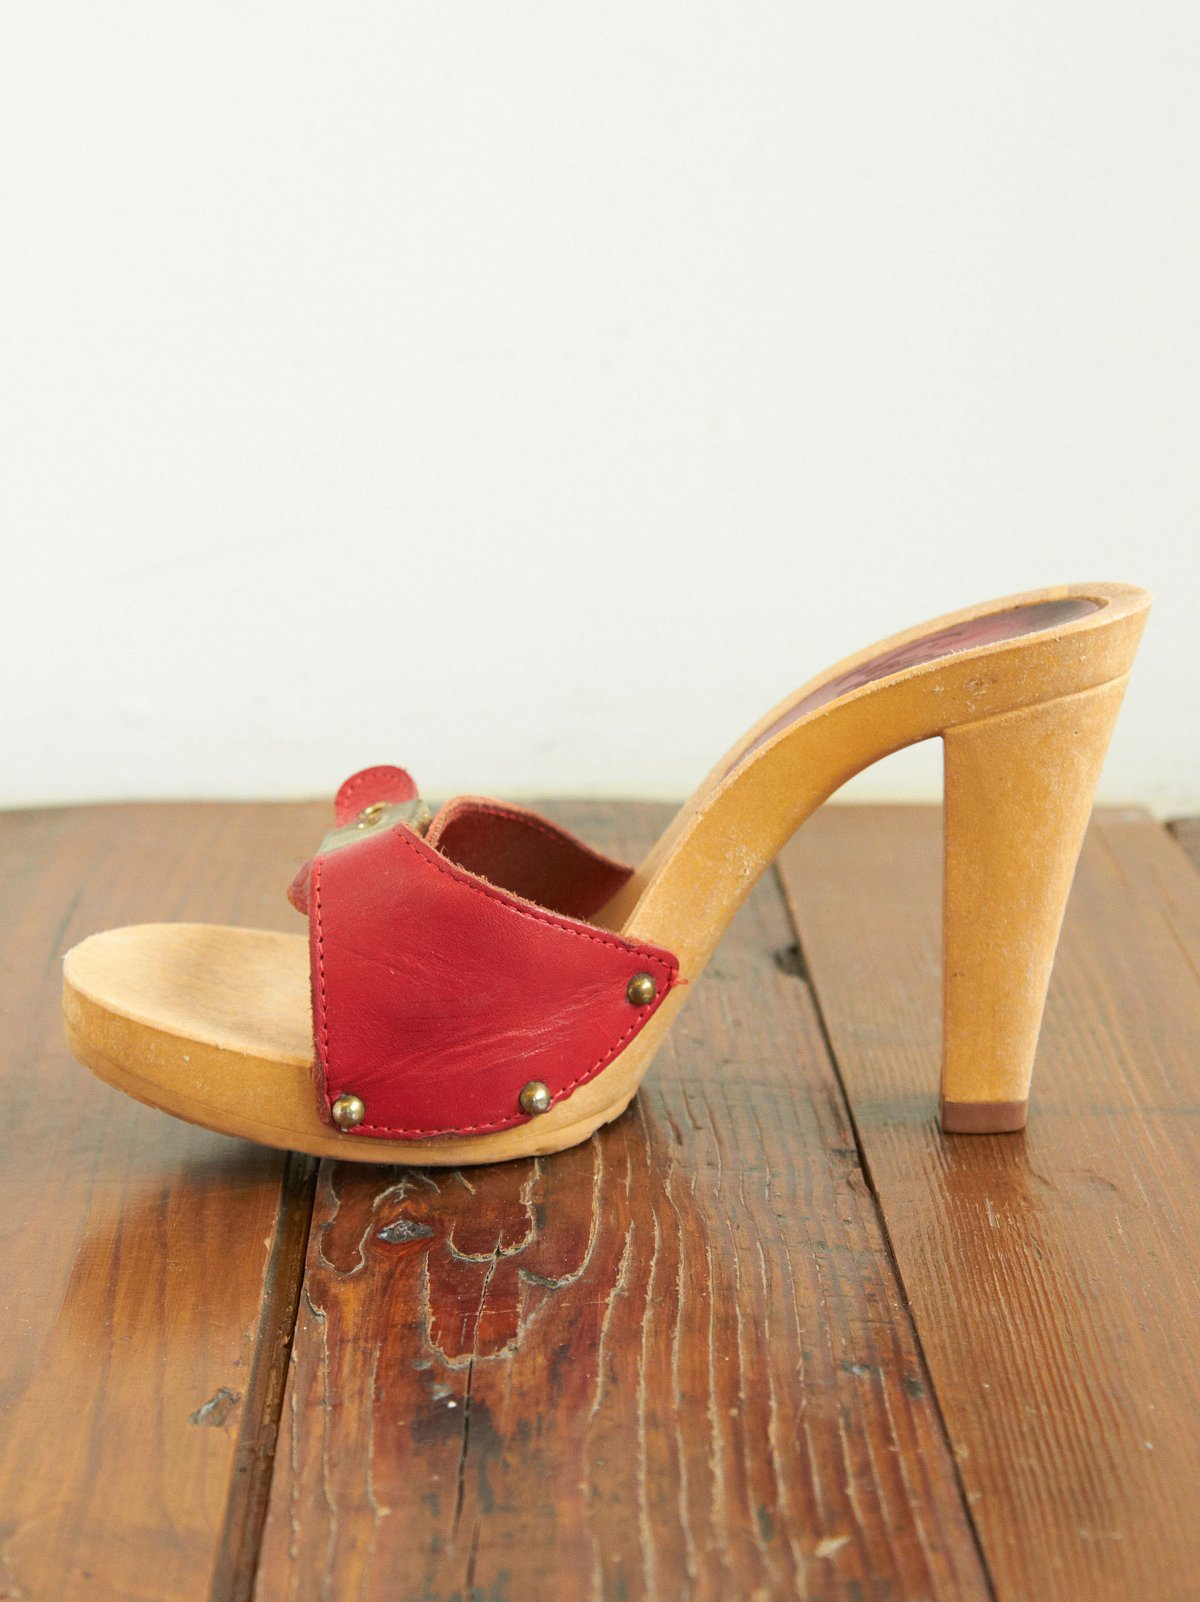 Vintage Red Leather Buckle Clog Sandals